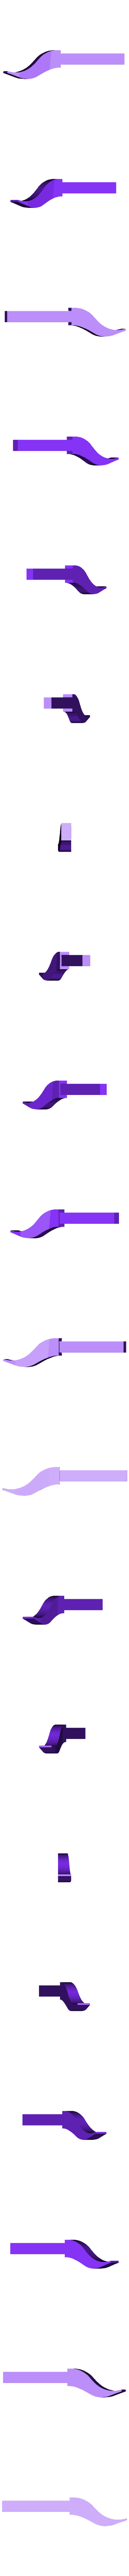 BucklePryPart1of2.stl Download free STL file BuckleBusters: Tools for BuckleBoards and BuckleTiles • 3D print object, tonyyoungblood